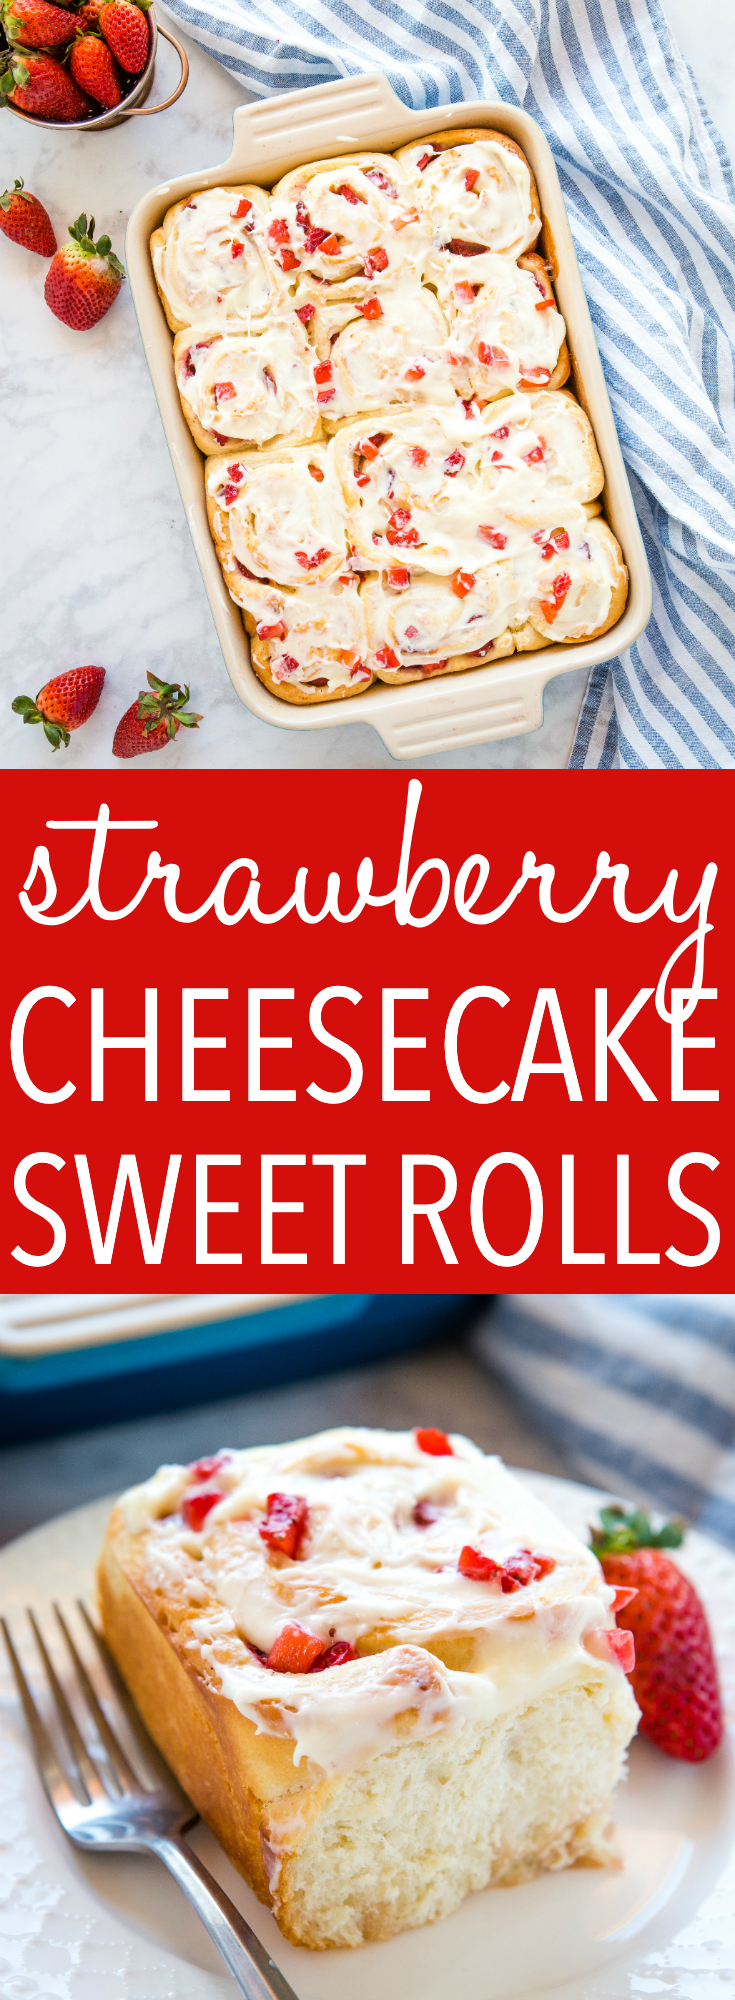 These Strawberry Cheesecake Sweet Rolls are the perfect spring breakfast or brunch featuring fresh juicy strawberries and cream cheese frosting! Recipe from thebusybaker.ca! #brunch #strawberry #fruit #spring #summer #seasonal #breakfast #snack #sweet #treat via @busybakerblog